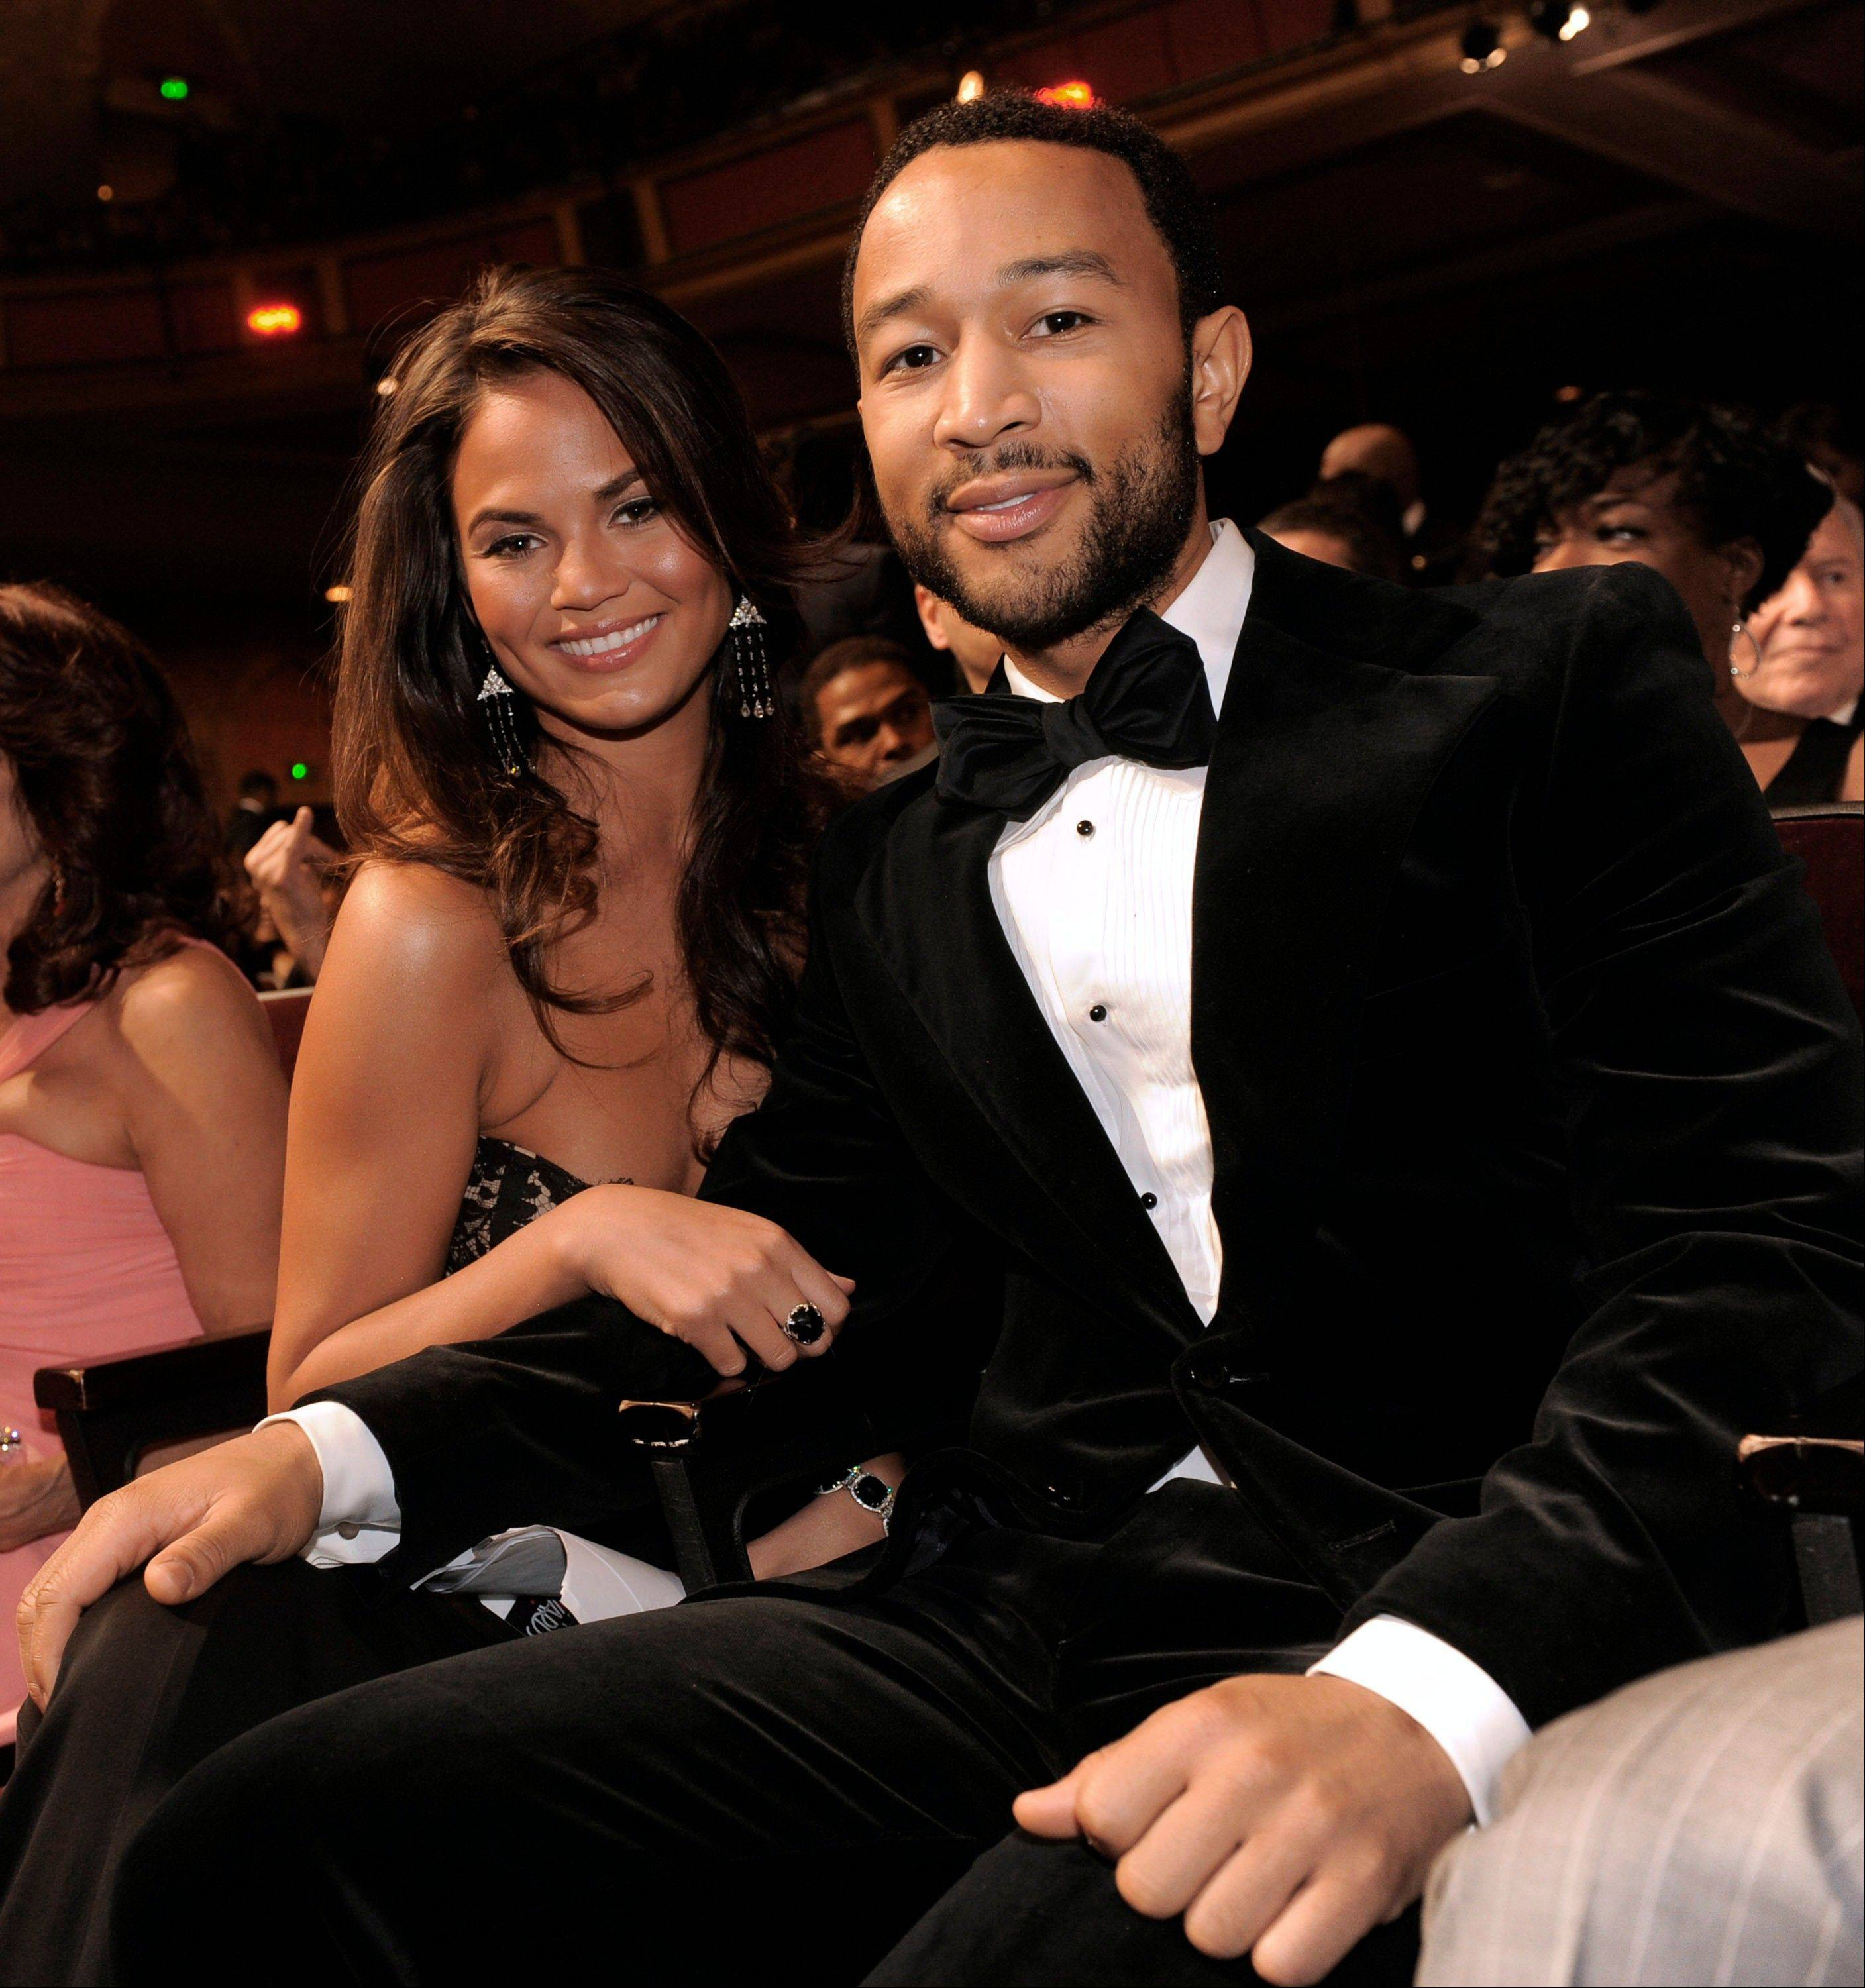 This Feb. 26, 2010 file photo shows John Legend, right, and Christine Teigen at the 41st NAACP Image Awards in Los Angeles. Legend is officially off the market. The R&B crooner's representative said Legend married Teigen on Saturday at the Villa Pizzo in Lake Como, Italy. Legend, 34, and Teigen, 27, got engaged in 2011.